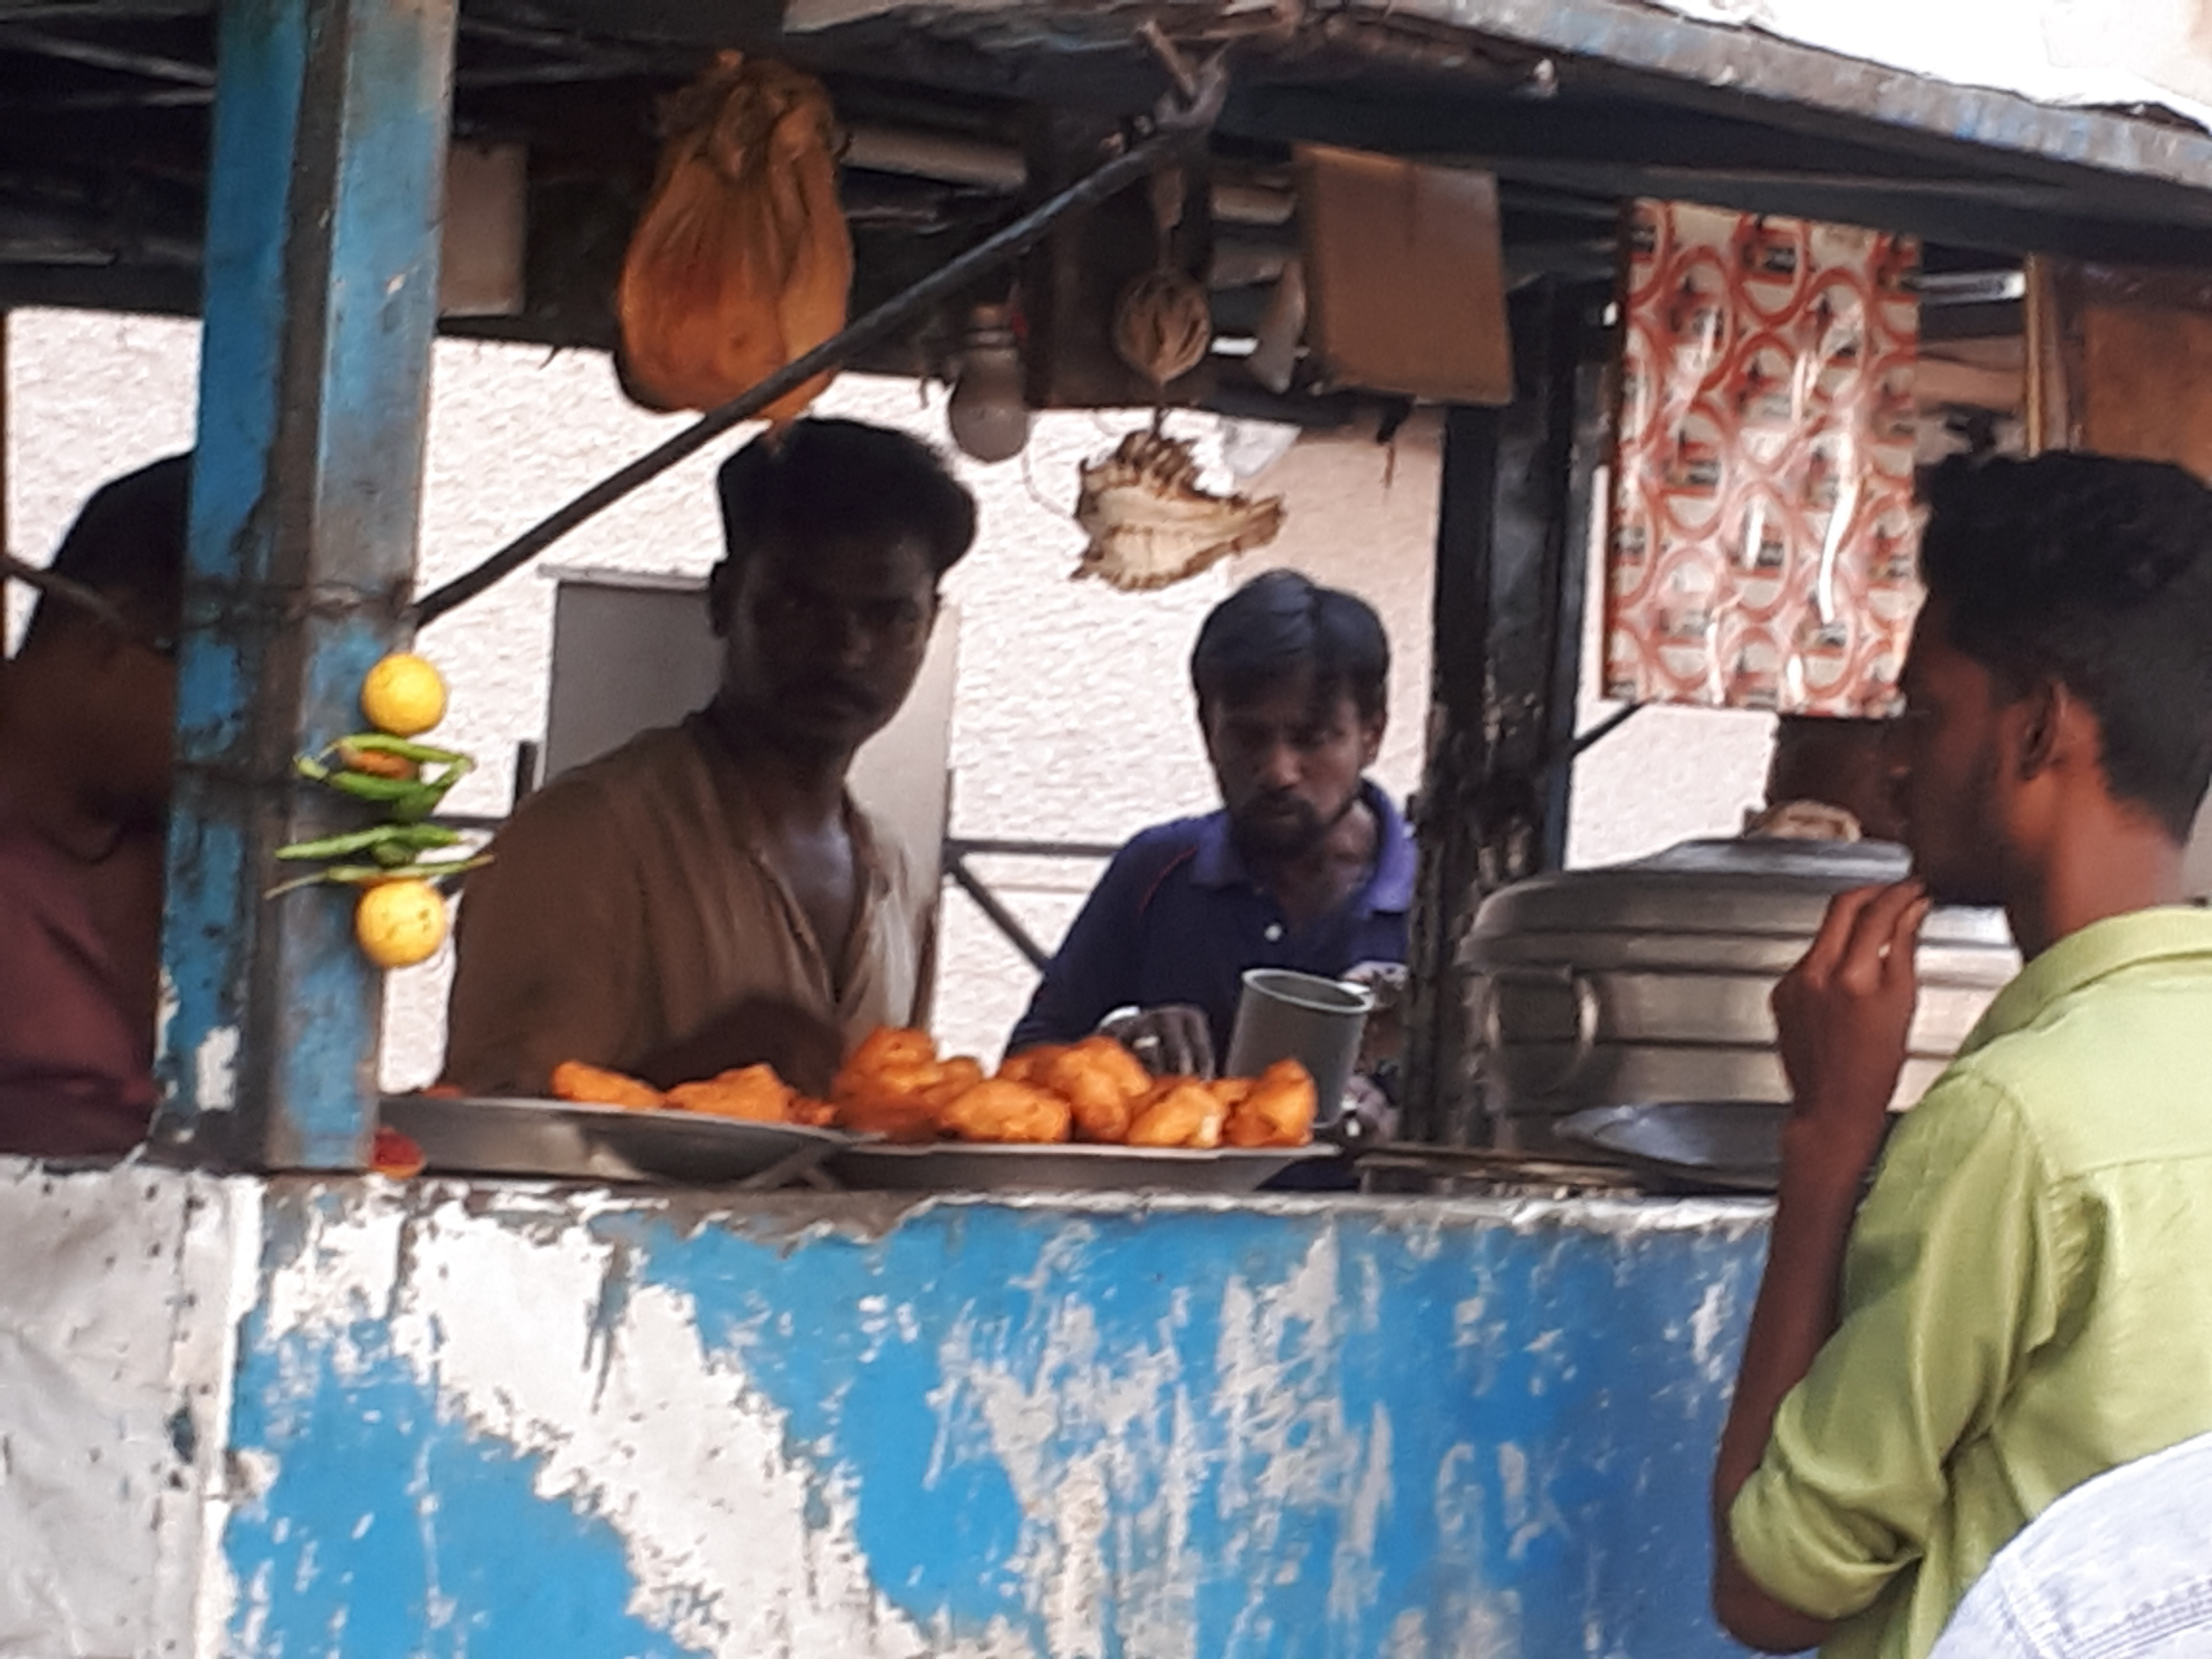 CHENNAI STREET FOOD